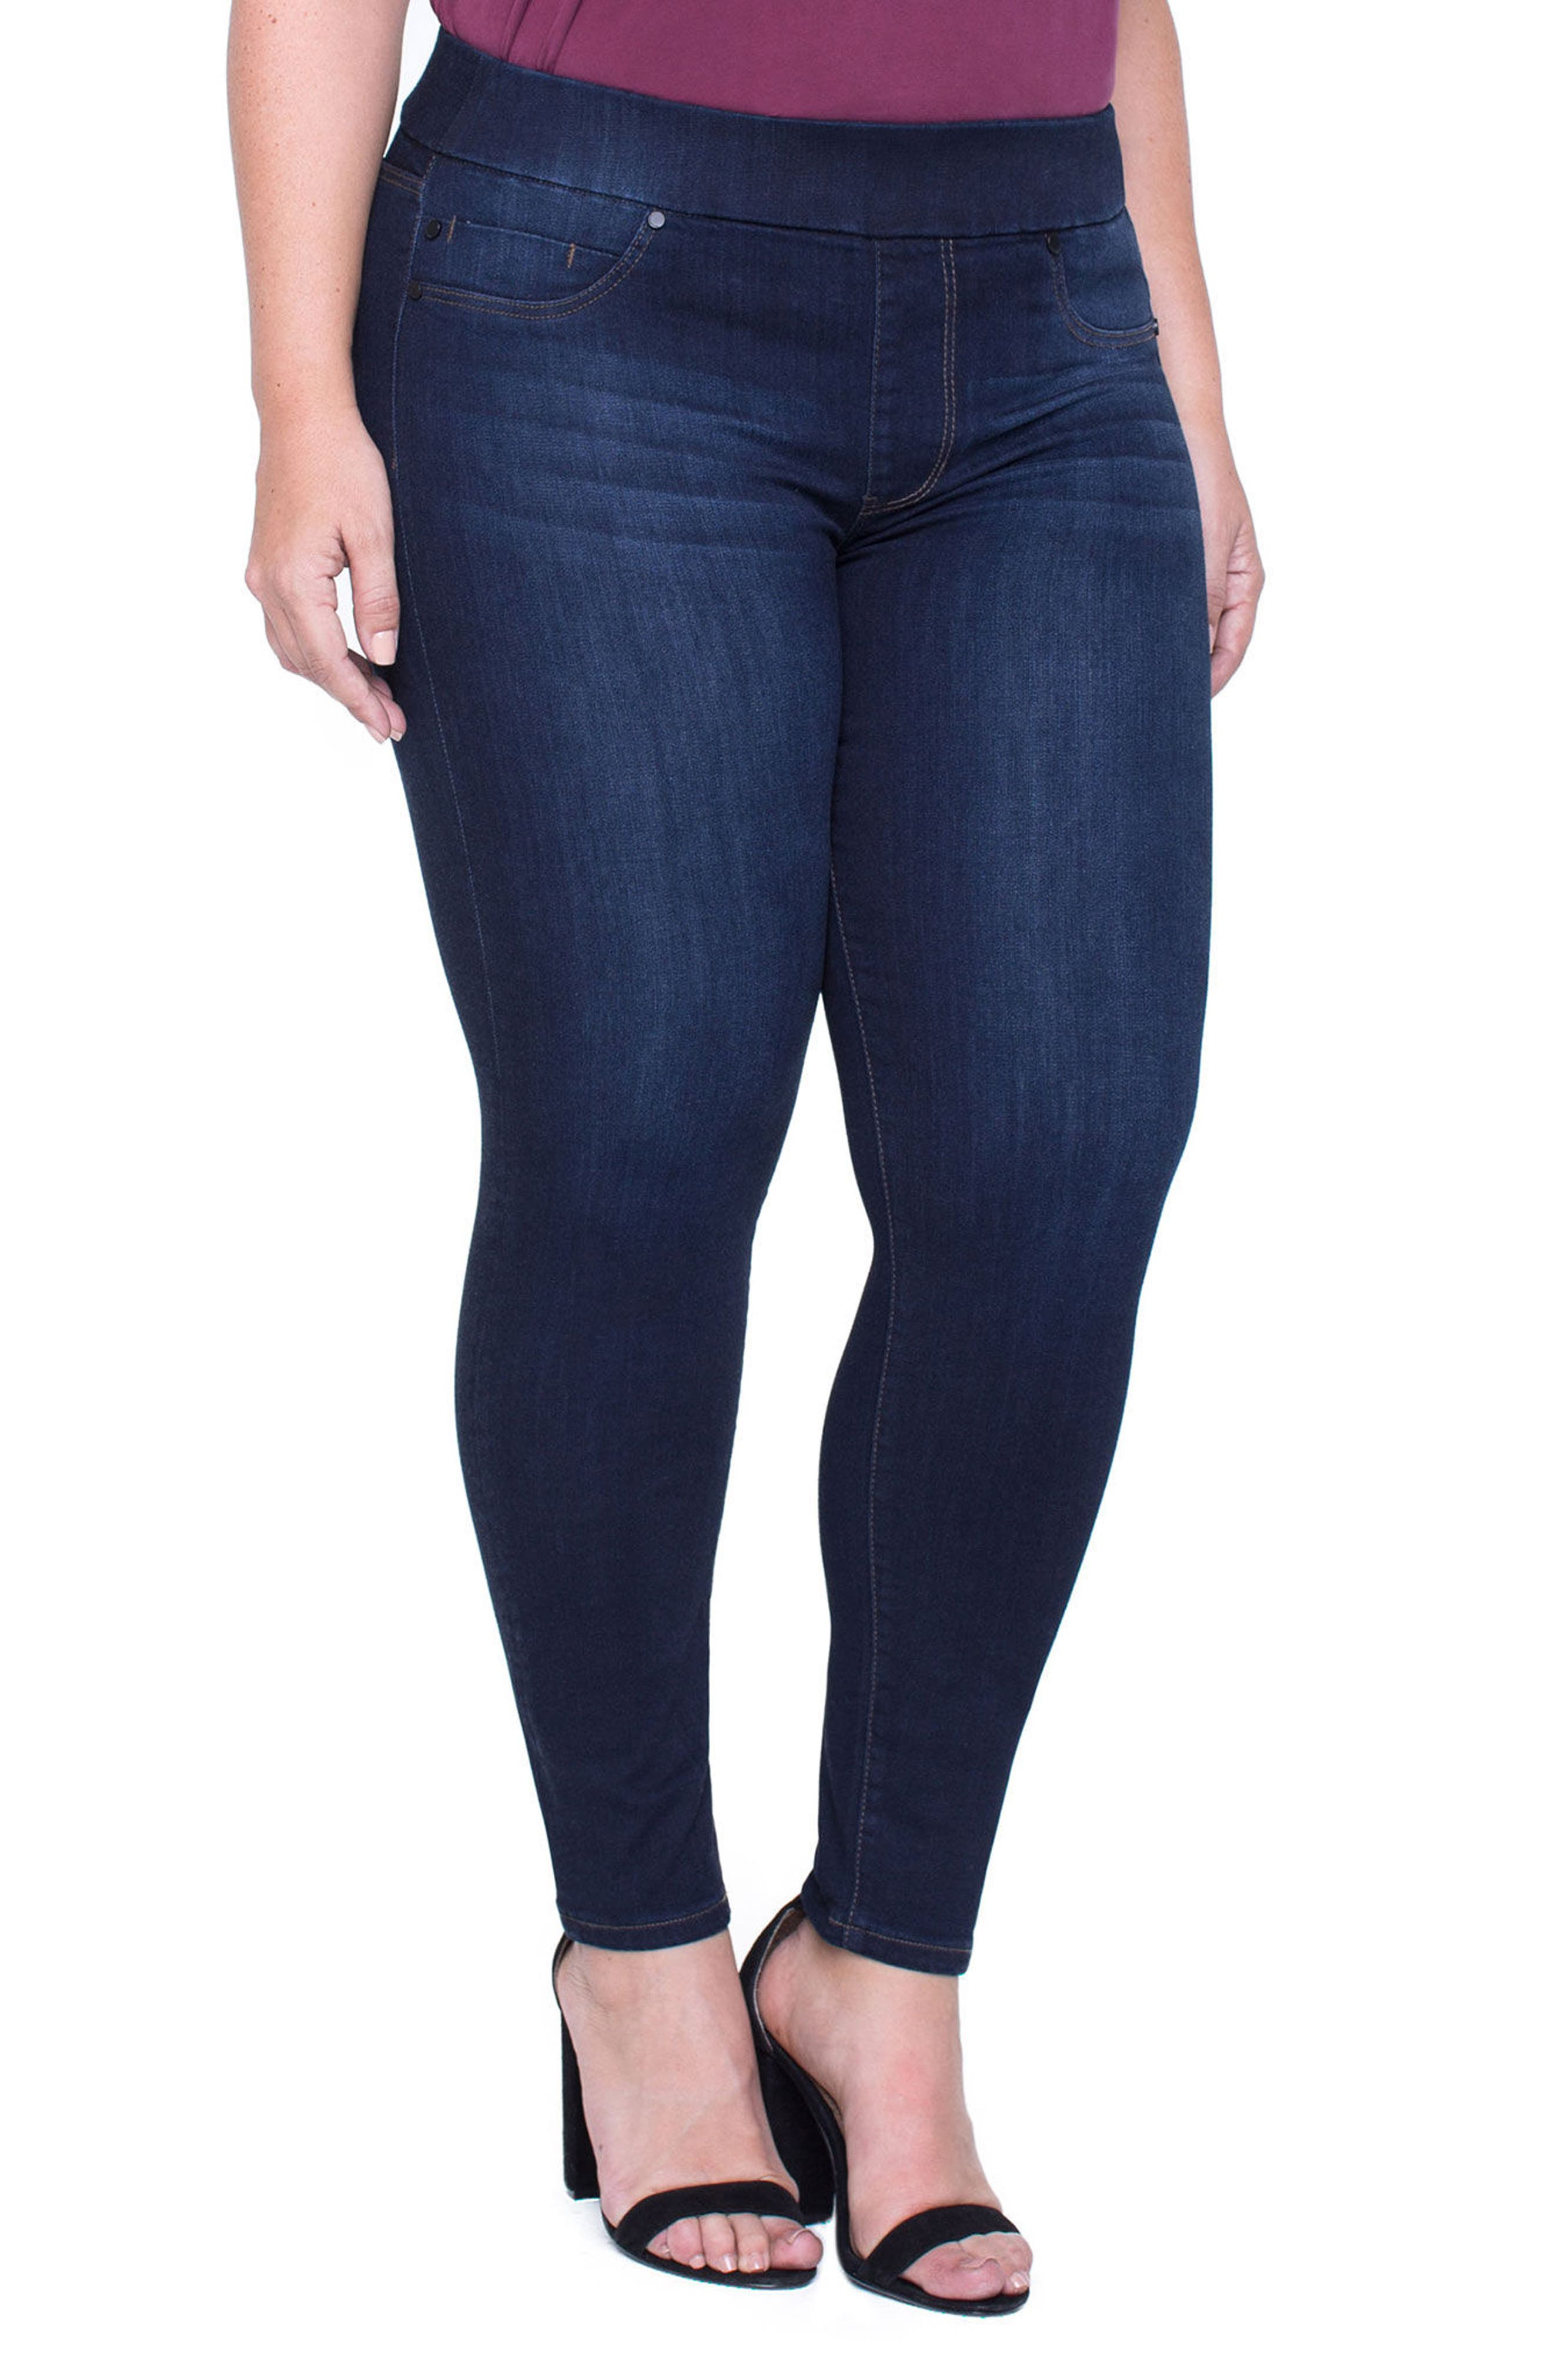 Alternate Image 1 Selected - Liverpool Jeans Company Sienna Pull-On Stretch Ankle Jeans (Plus Size)